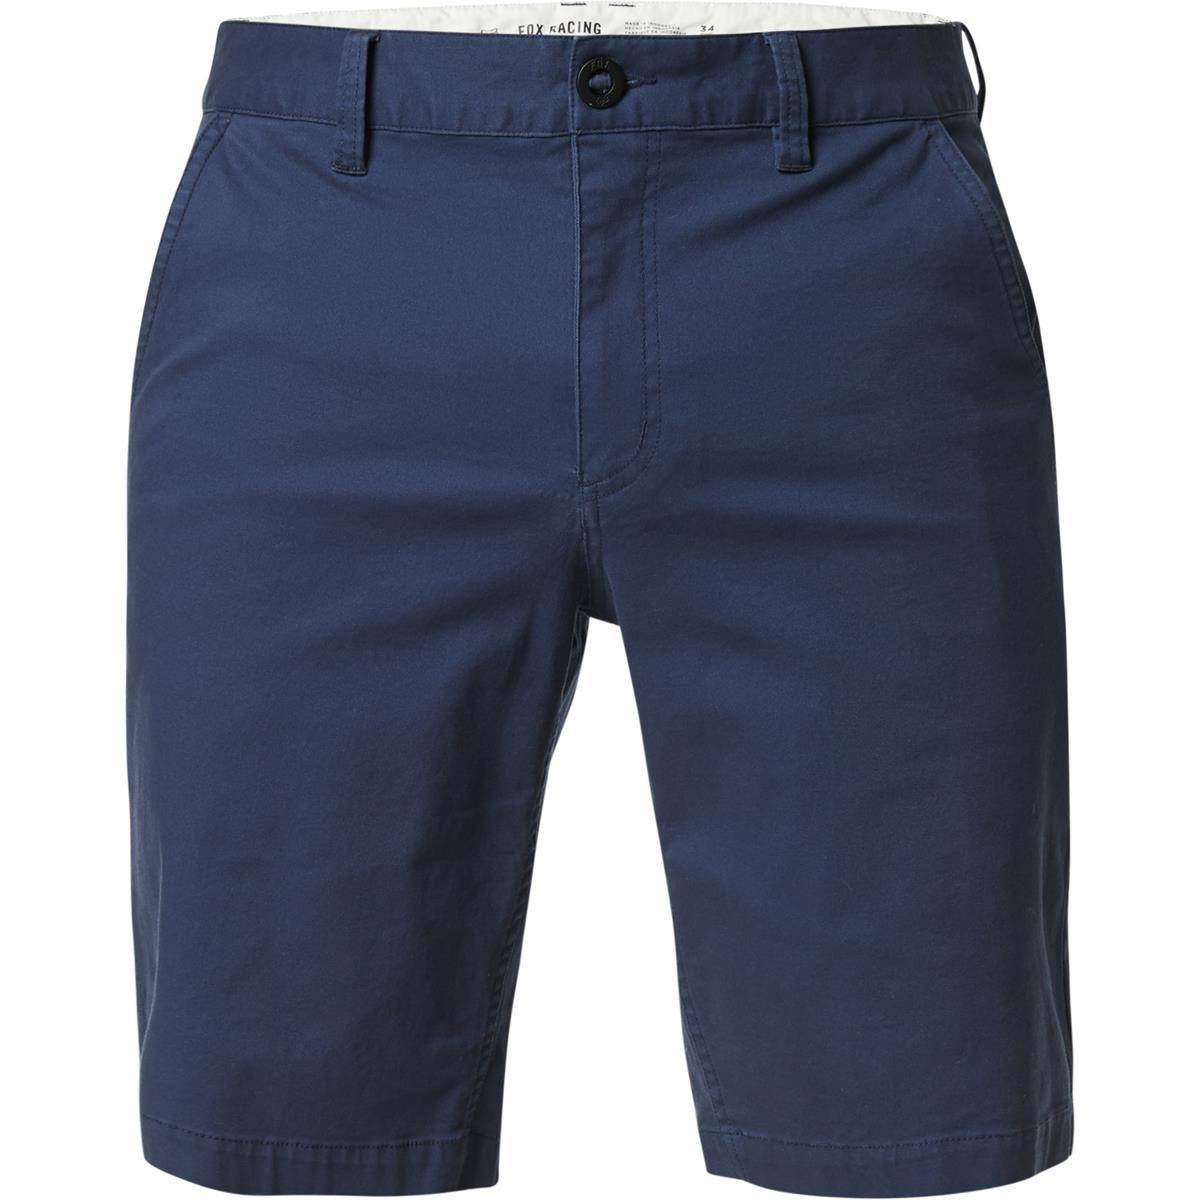 Fox Shorts Essex 2.0 - 28 - Bleu